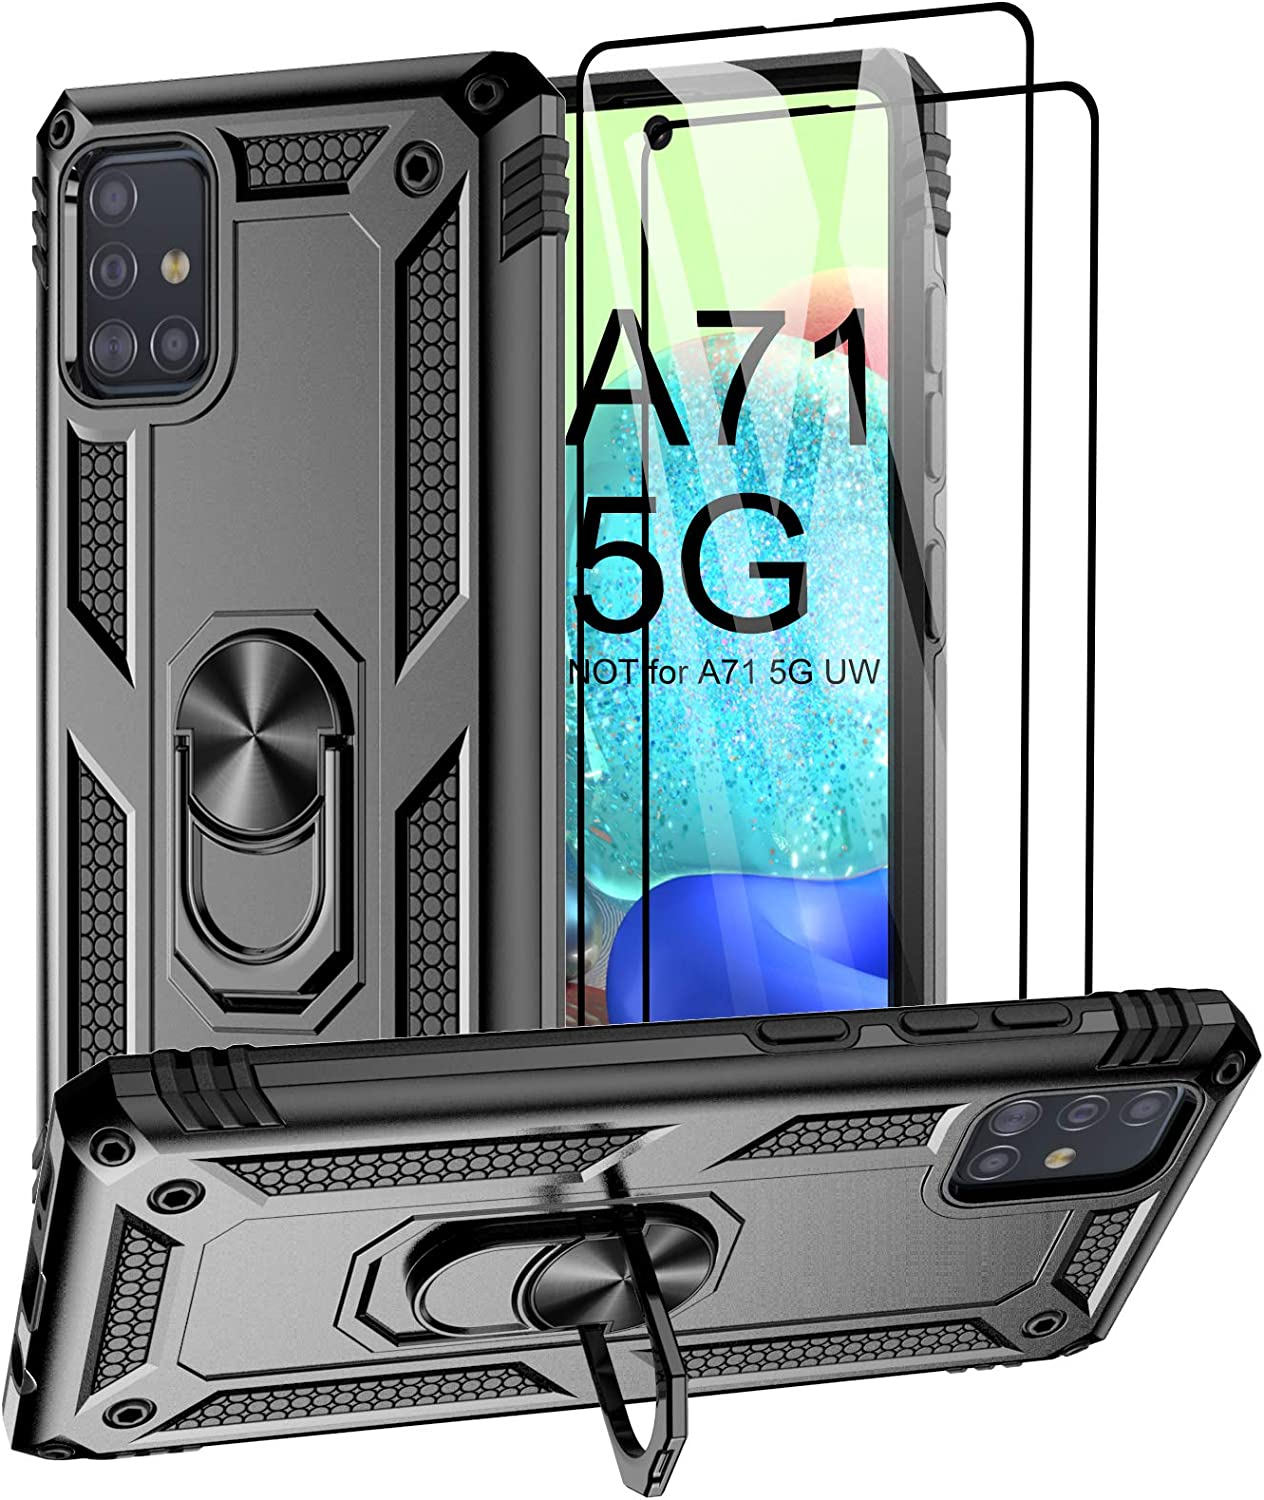 Aliruke Case for Samsung Galaxy A71 5G Case with 2 Tempered Glass Screen Protector, Military Grade Drop Tested Cover Grip Ring Kickstand Protective Phone Cases for Samsung Galaxy A71 5G A716U, Black